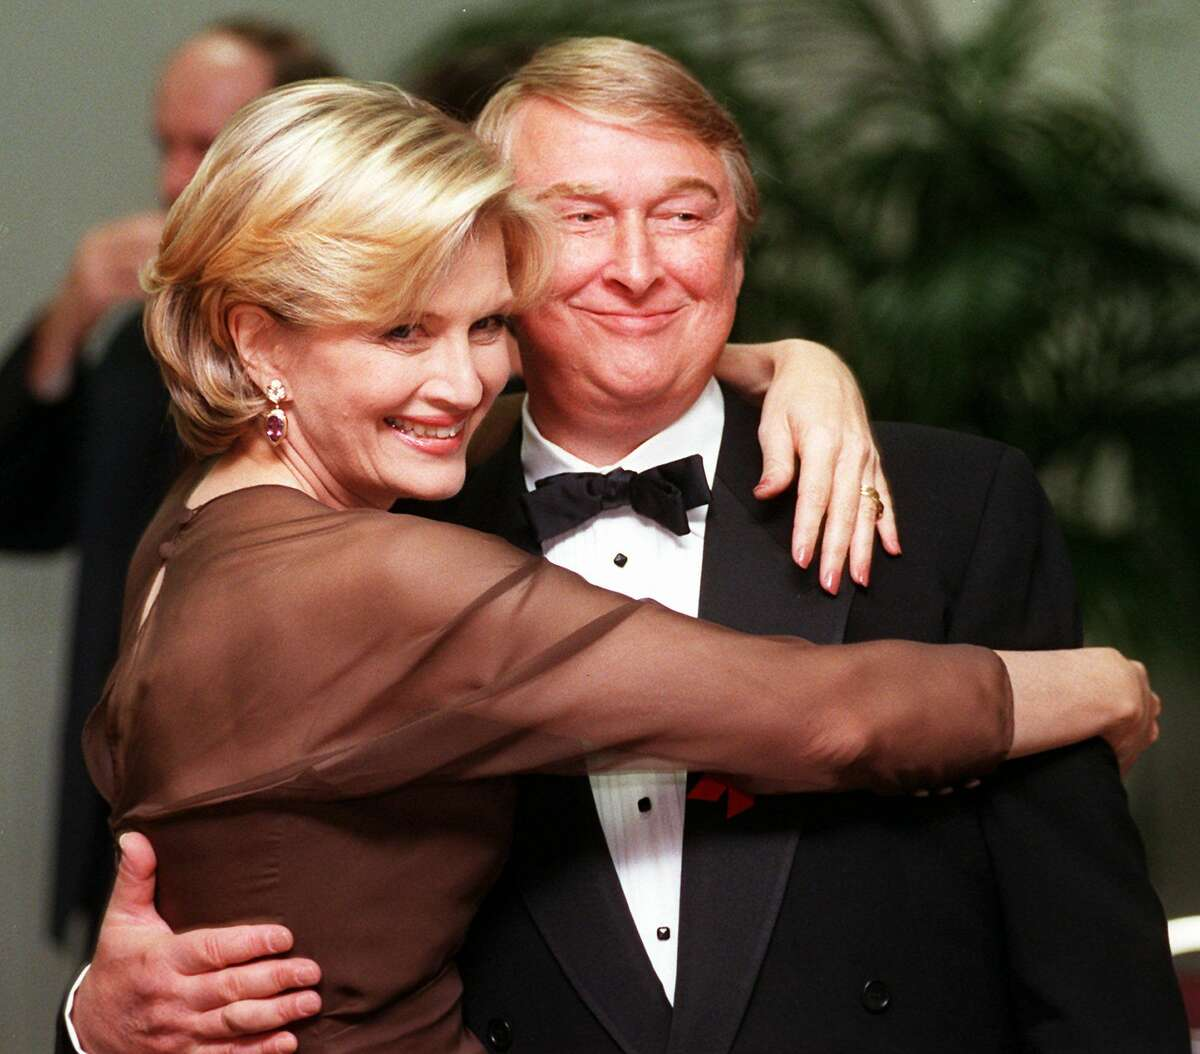 FILE - Television journalist Diane Sawyer and her husband, film director Mike Nichols, pose together at the Academy of Television Arts & Sciences' 13th Annual Hall of Fame induction ceremonies, in this Nov. 1, 1997, file photo taken in the North Hollywood section of Los Angeles. ABC News confirms Mike Nichols, director and husband of Diane Sawyer, died Nov. 19, 2014. He was 83.